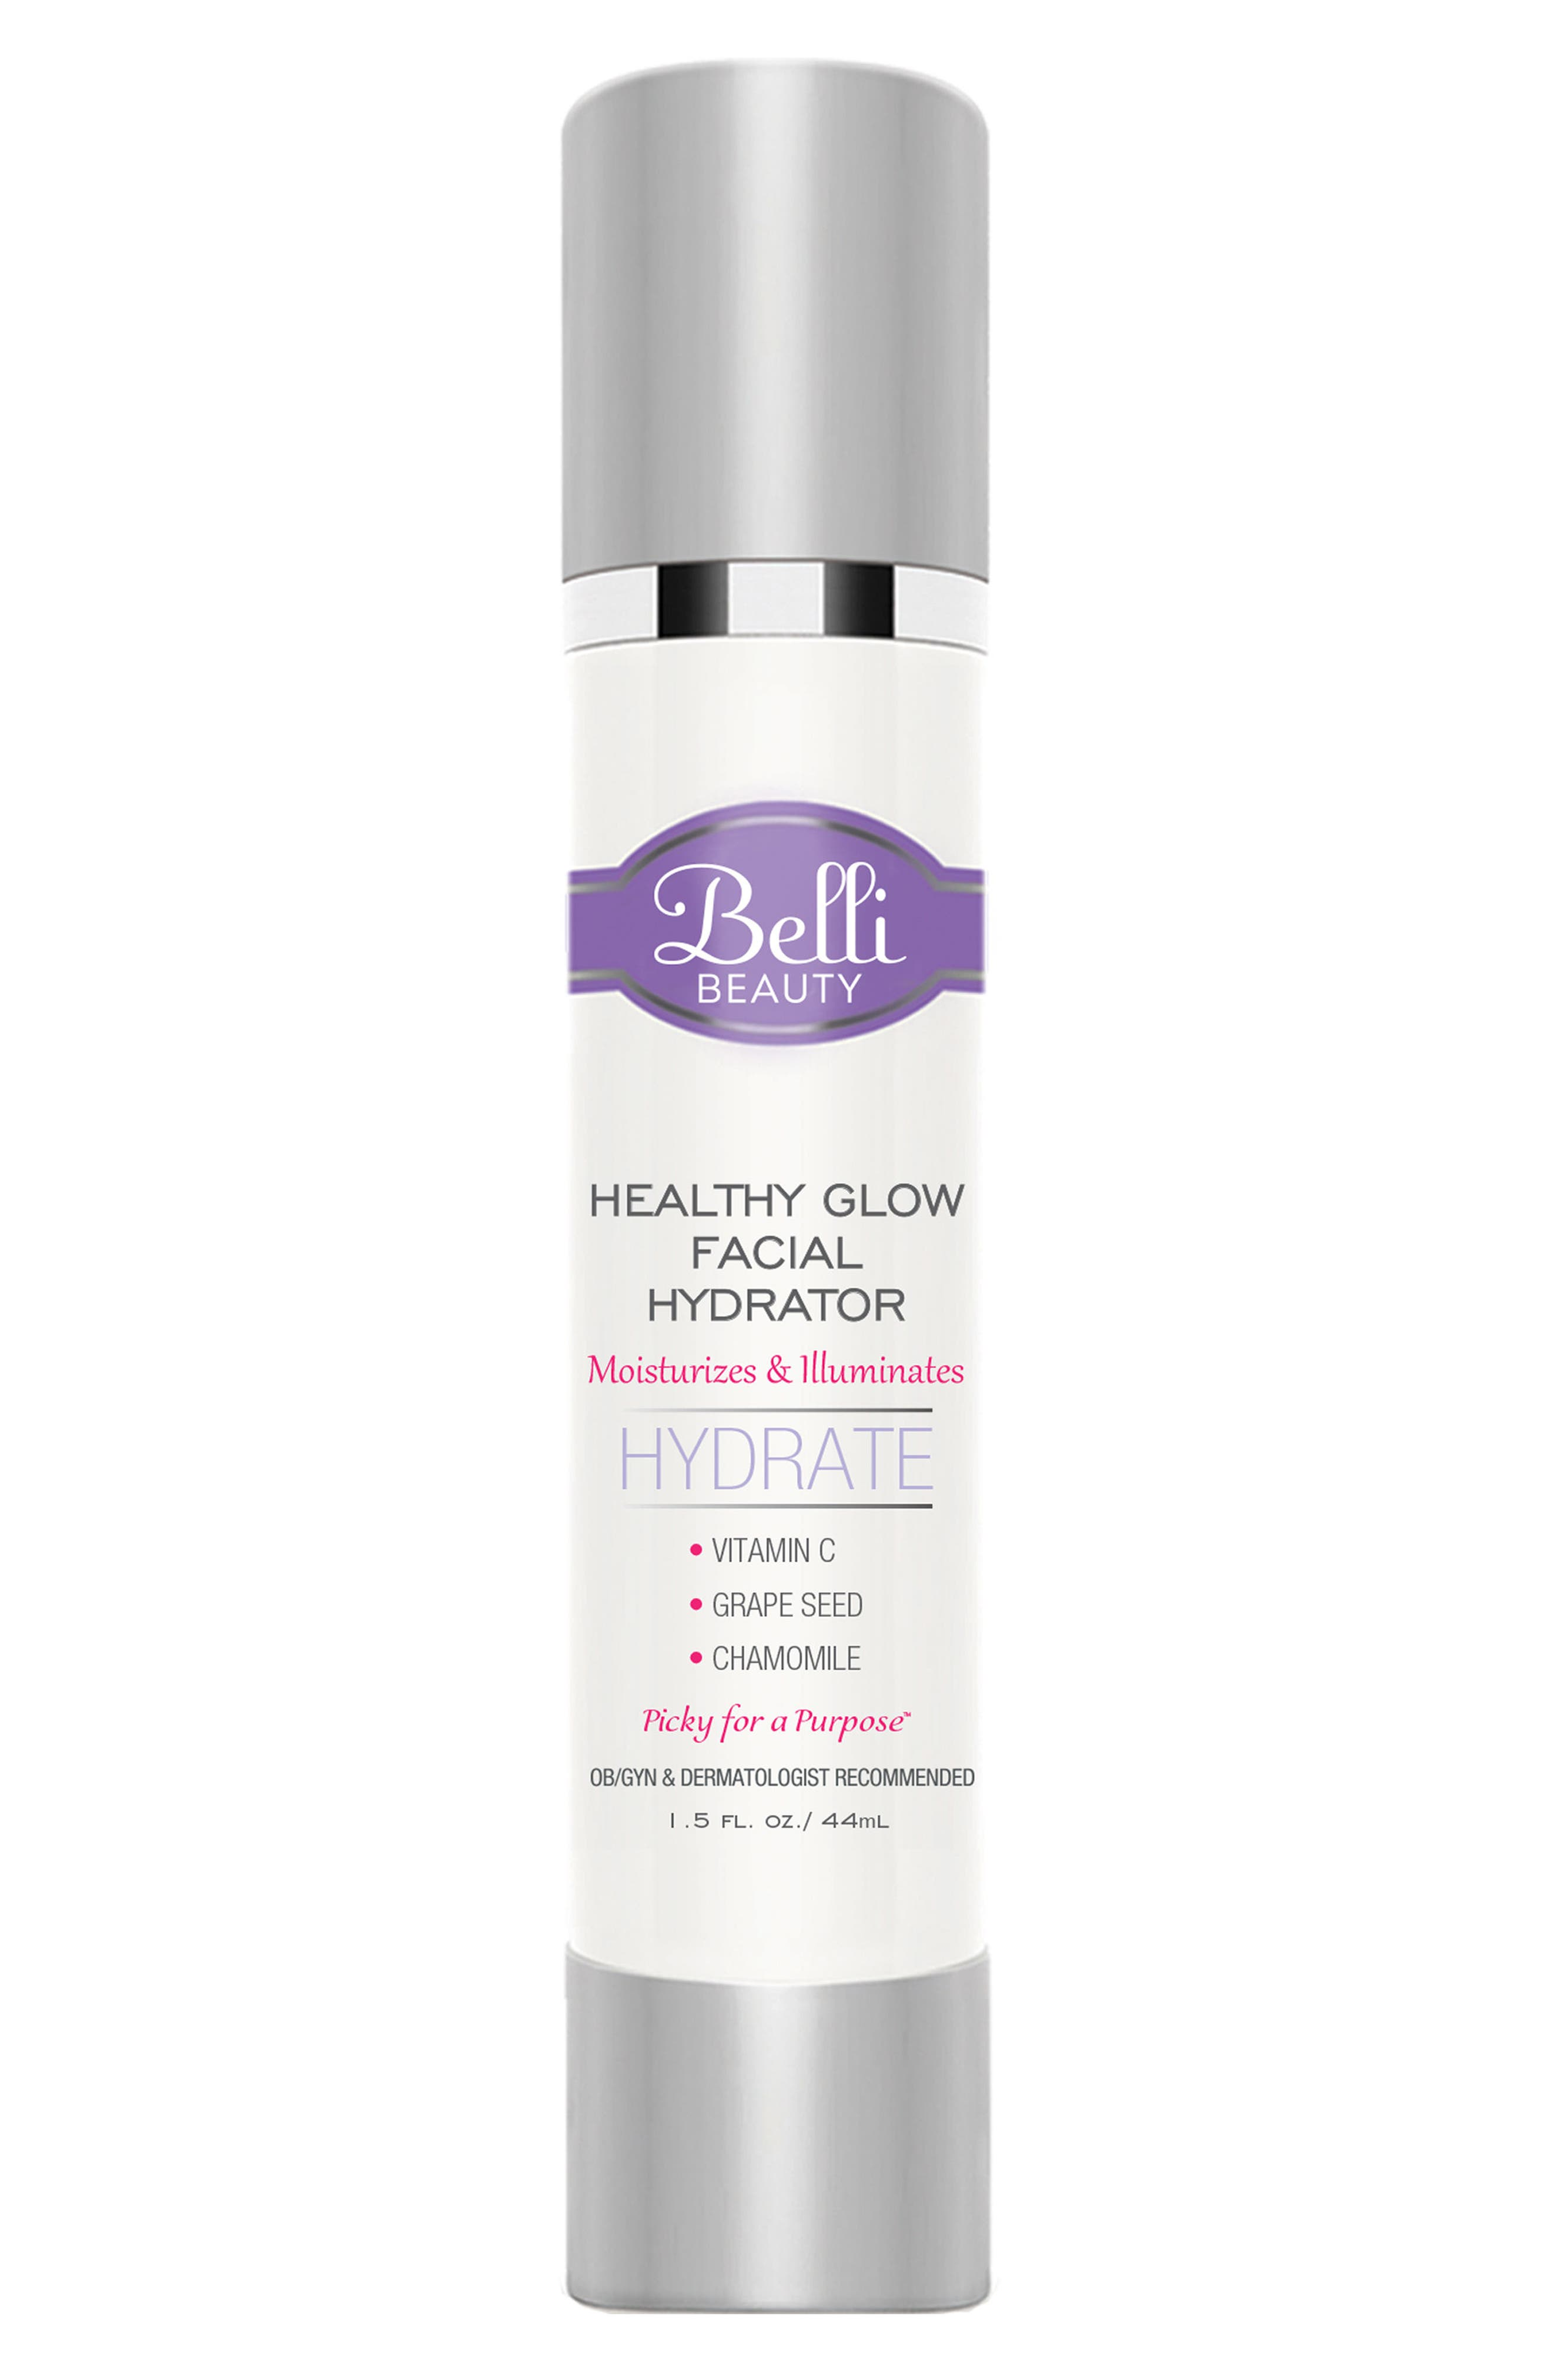 'Healthy Glow Facial Hydrator' Lightweight Moisturizer,                             Main thumbnail 1, color,                             White